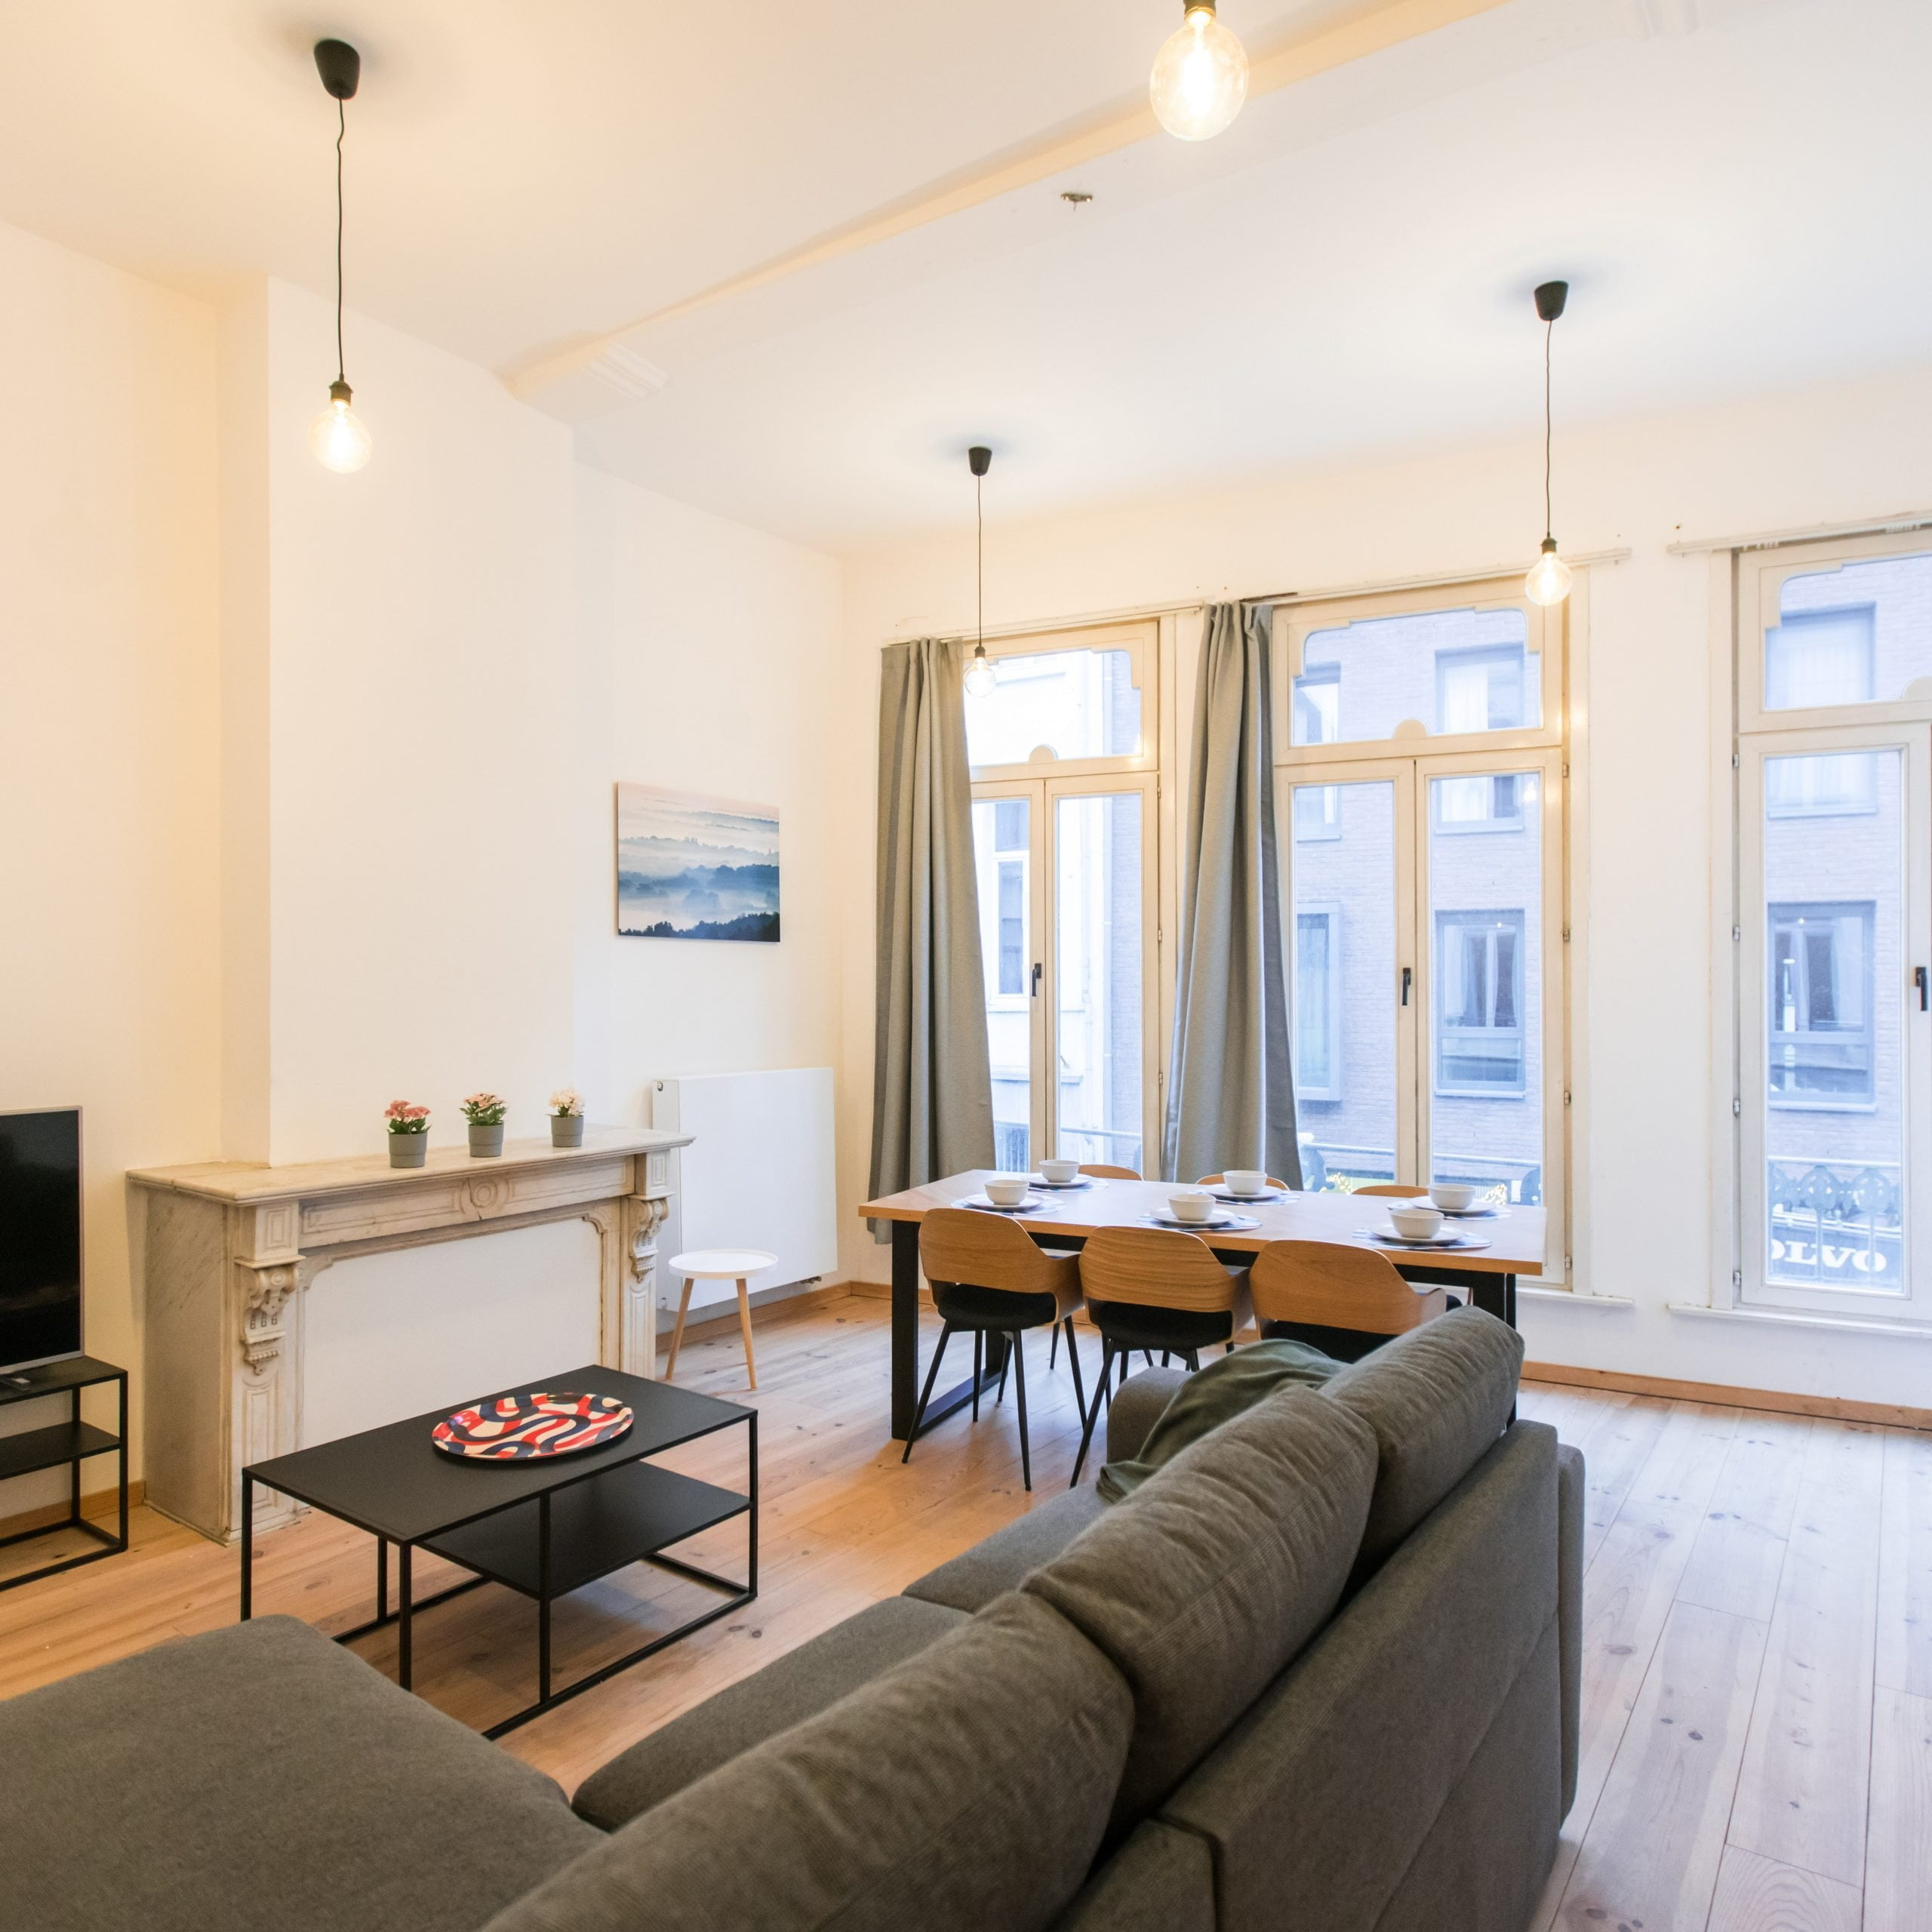 2 bedroom apartment for expats in Antwerp